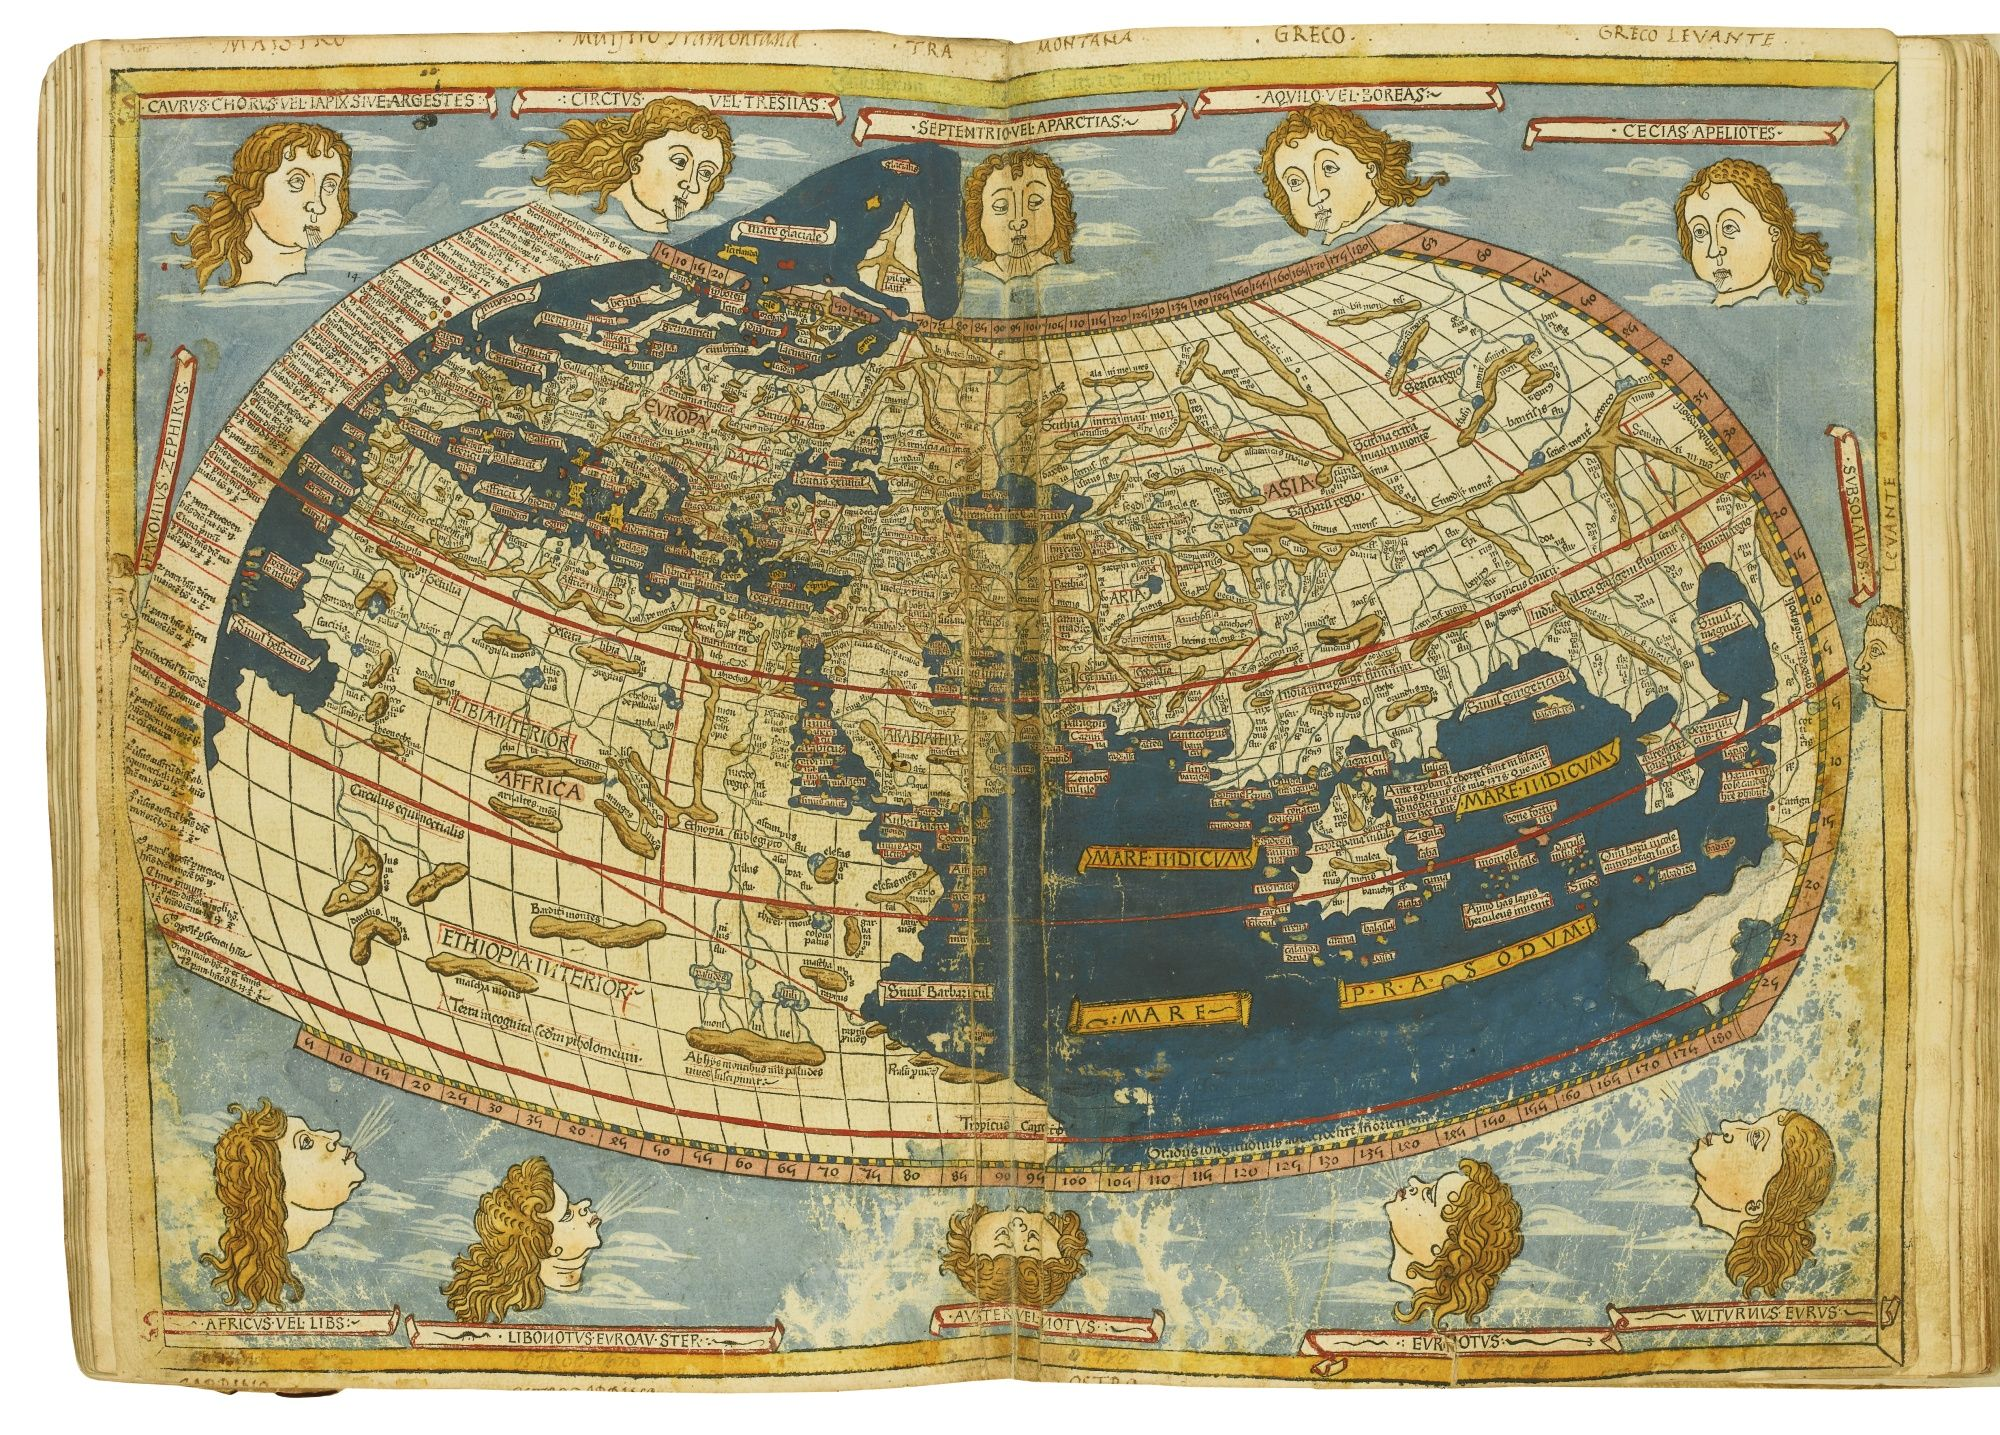 Ptolemaeus claudius lot sothebys paper art diaries ptolemys world map with its rich colours and its distinctive elegant roman type the 1482 ulm ptolemy was one of the finest and most ambitious printing gumiabroncs Image collections